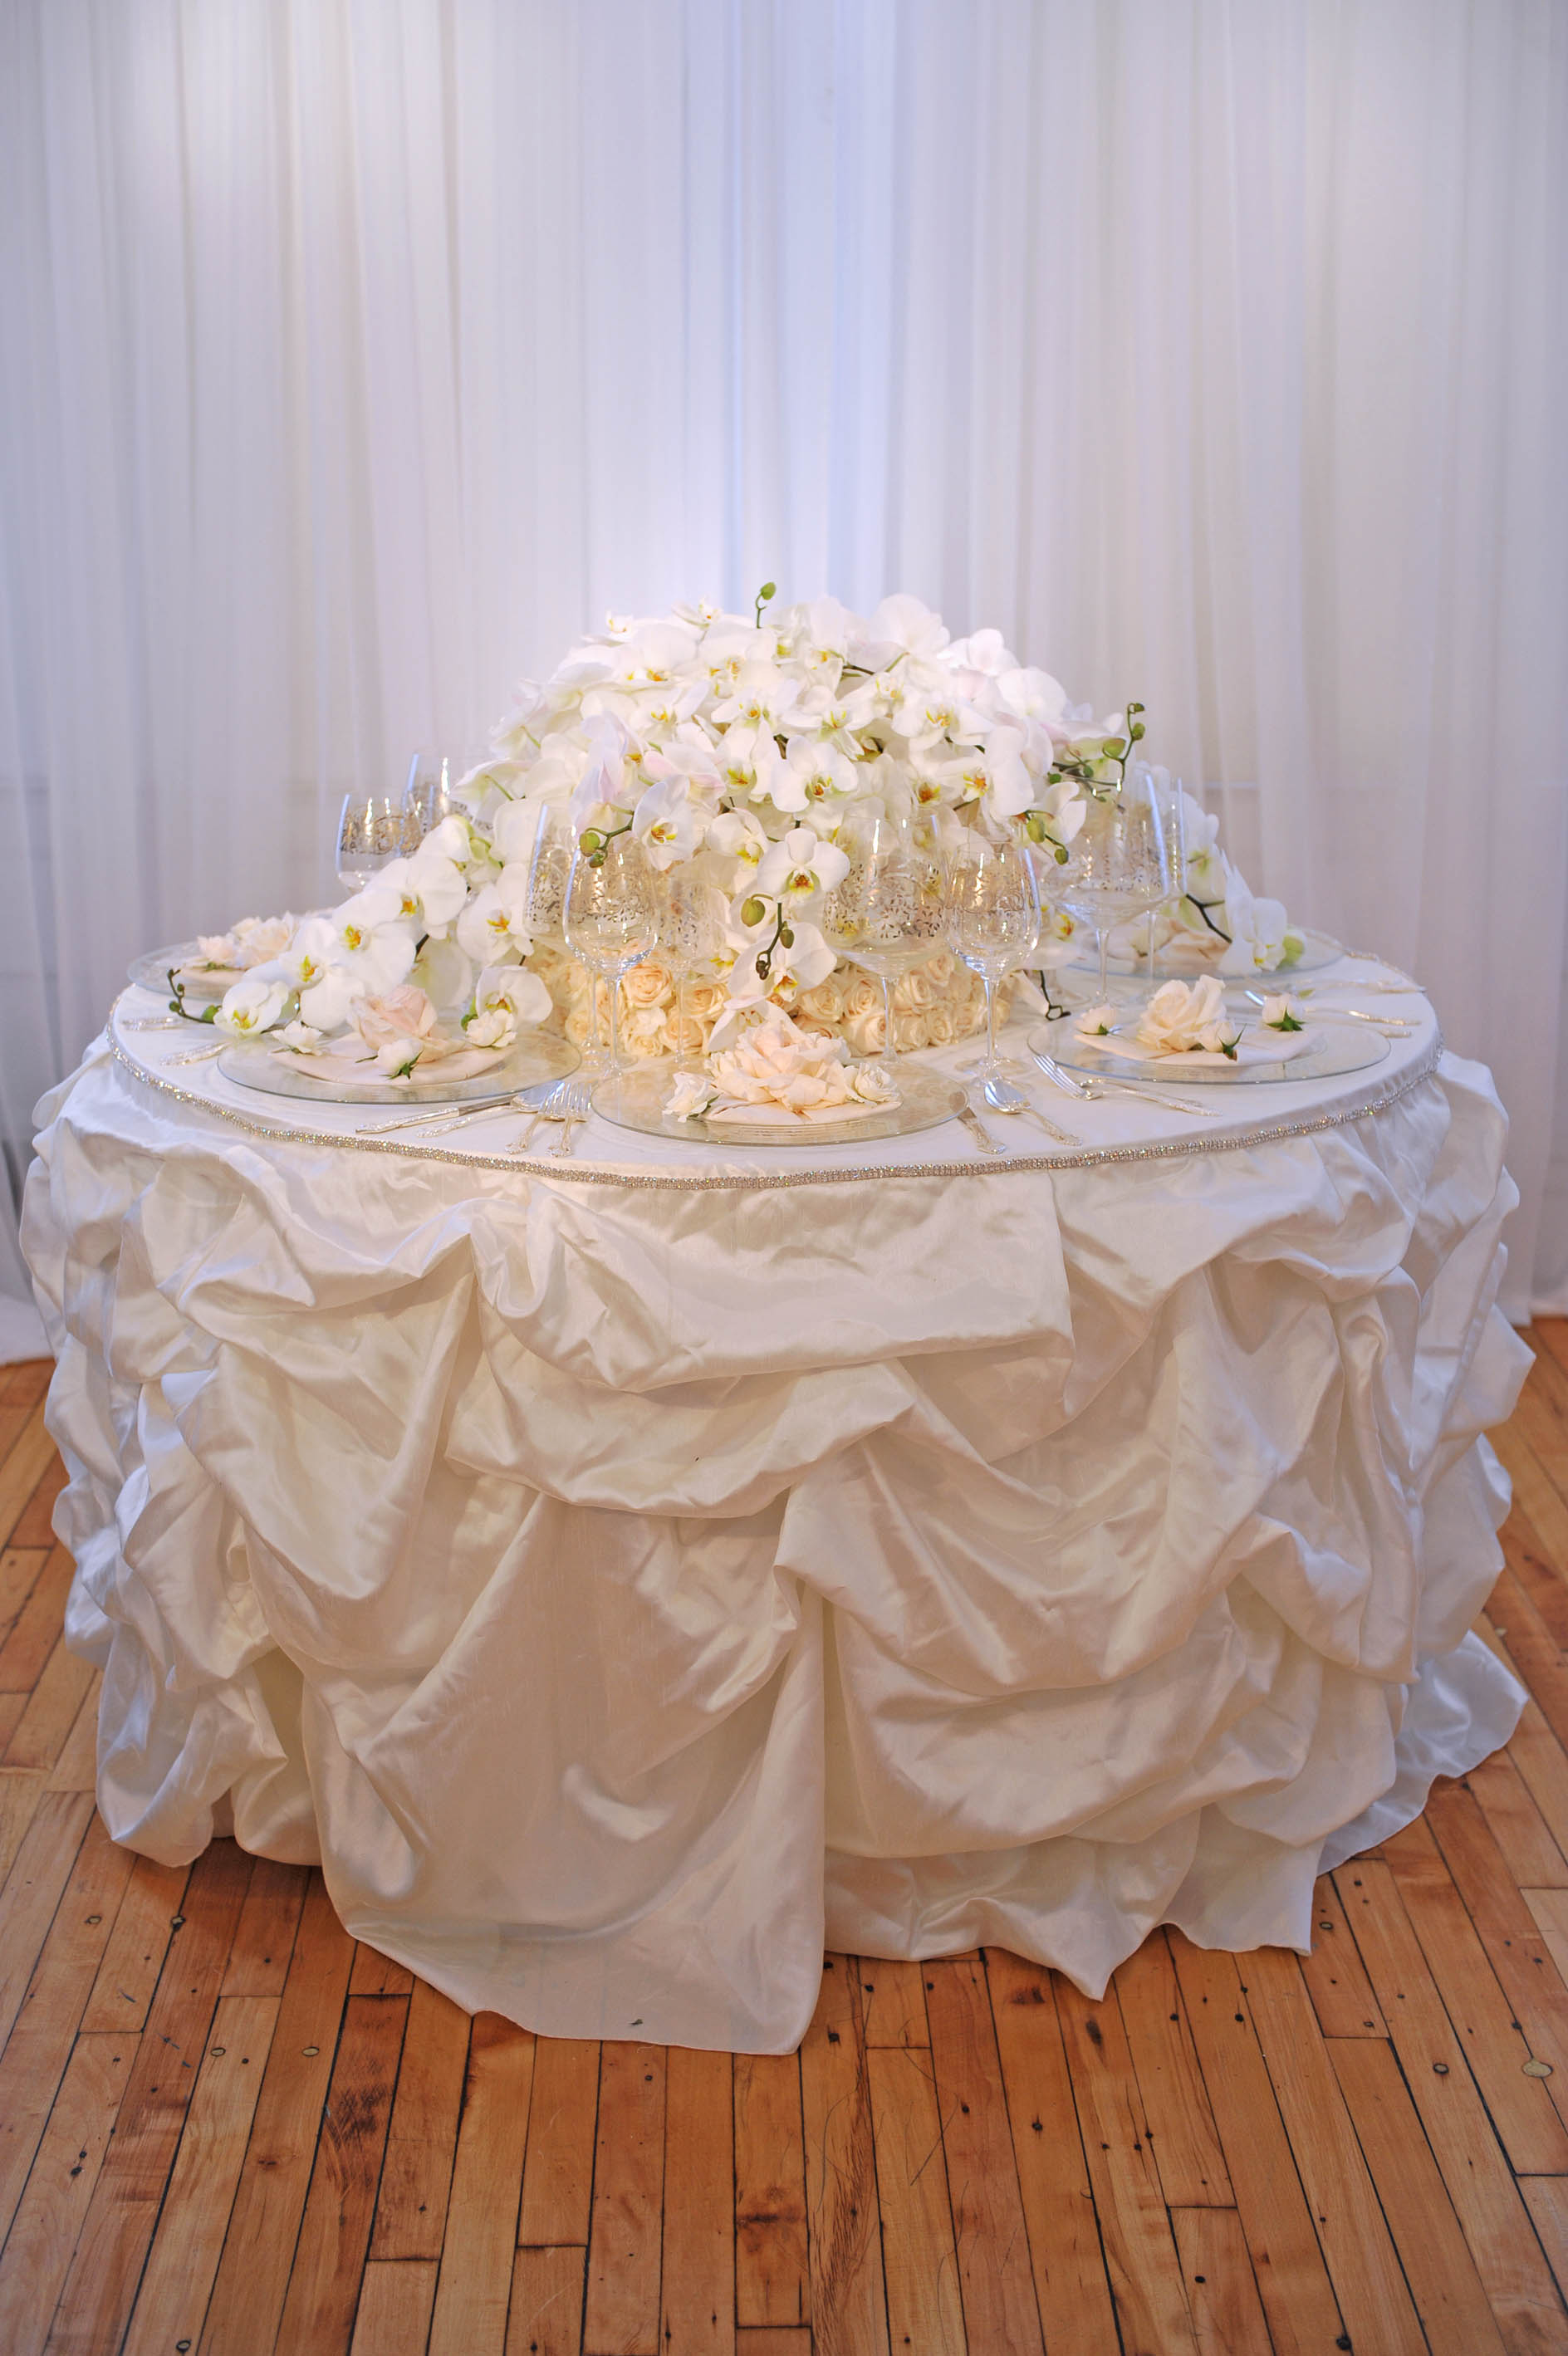 frequently asked questions should i go with my chairs tables covered or naked tablecloths for wedding place settings table setting flowers wedding centerpieces bouquets arrangements